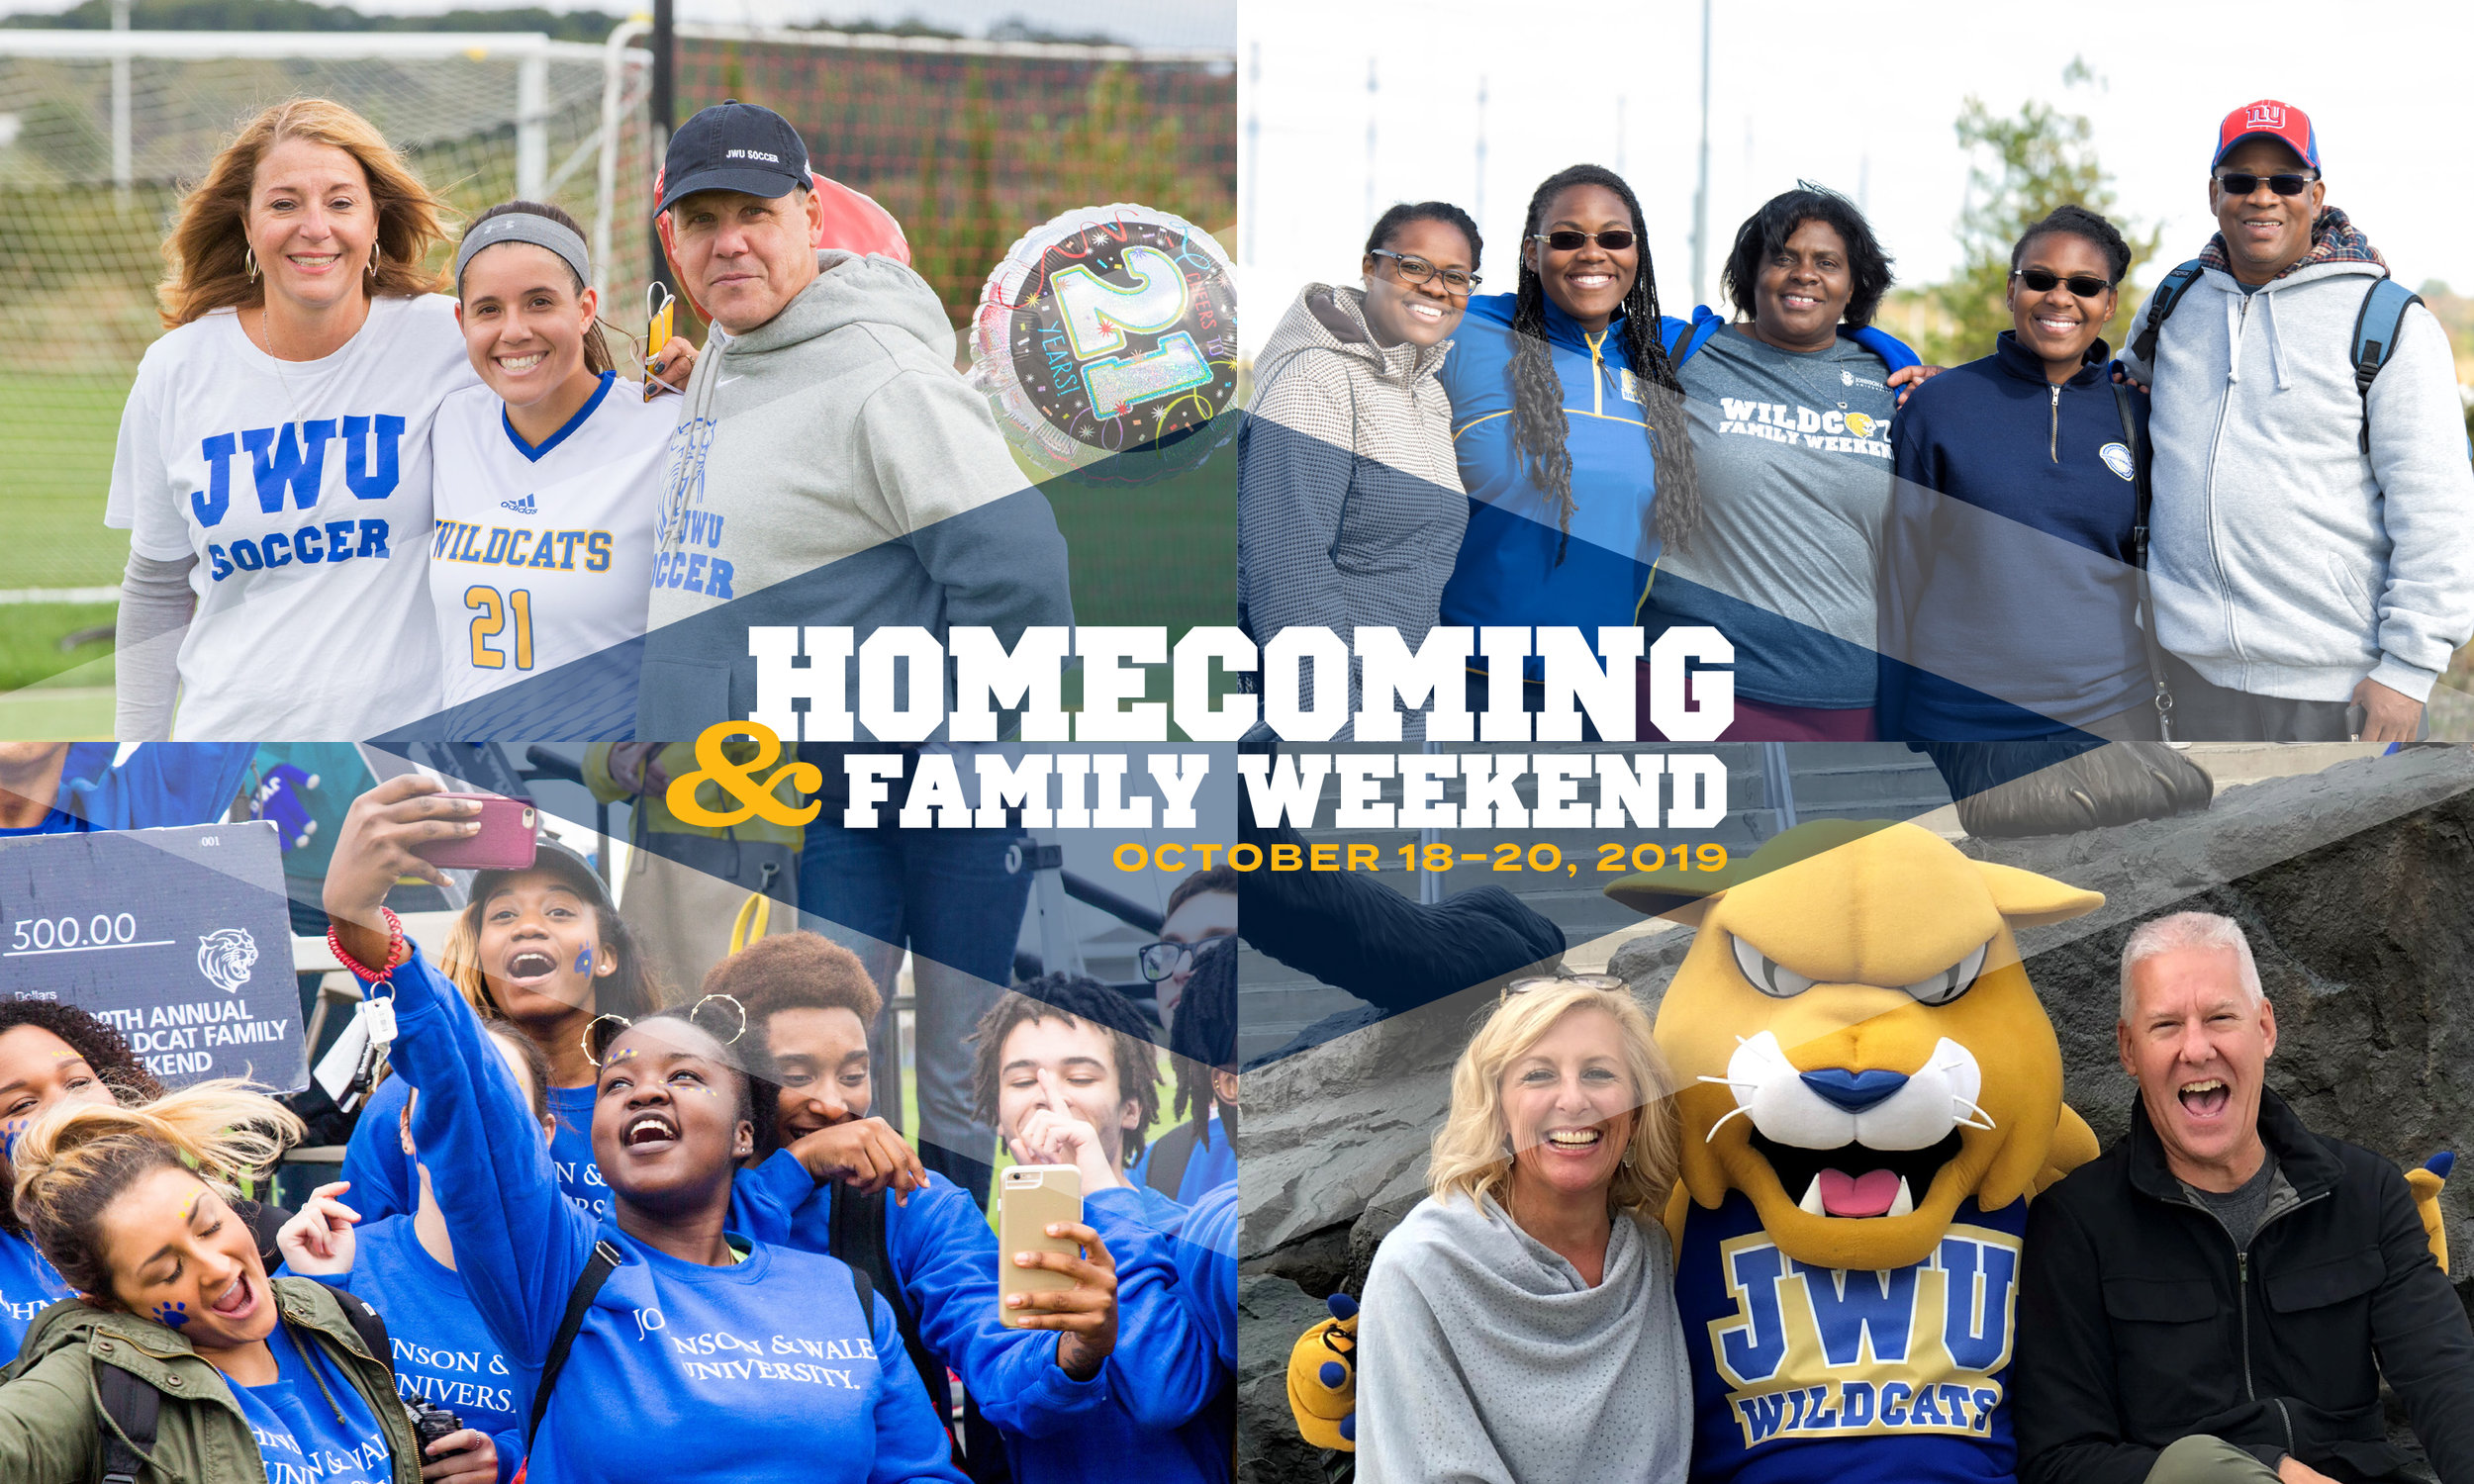 Homecoming & Family Weekend    registration is live. Check out the full schedule of activities and events online. Early bird pricing available now through September 30.